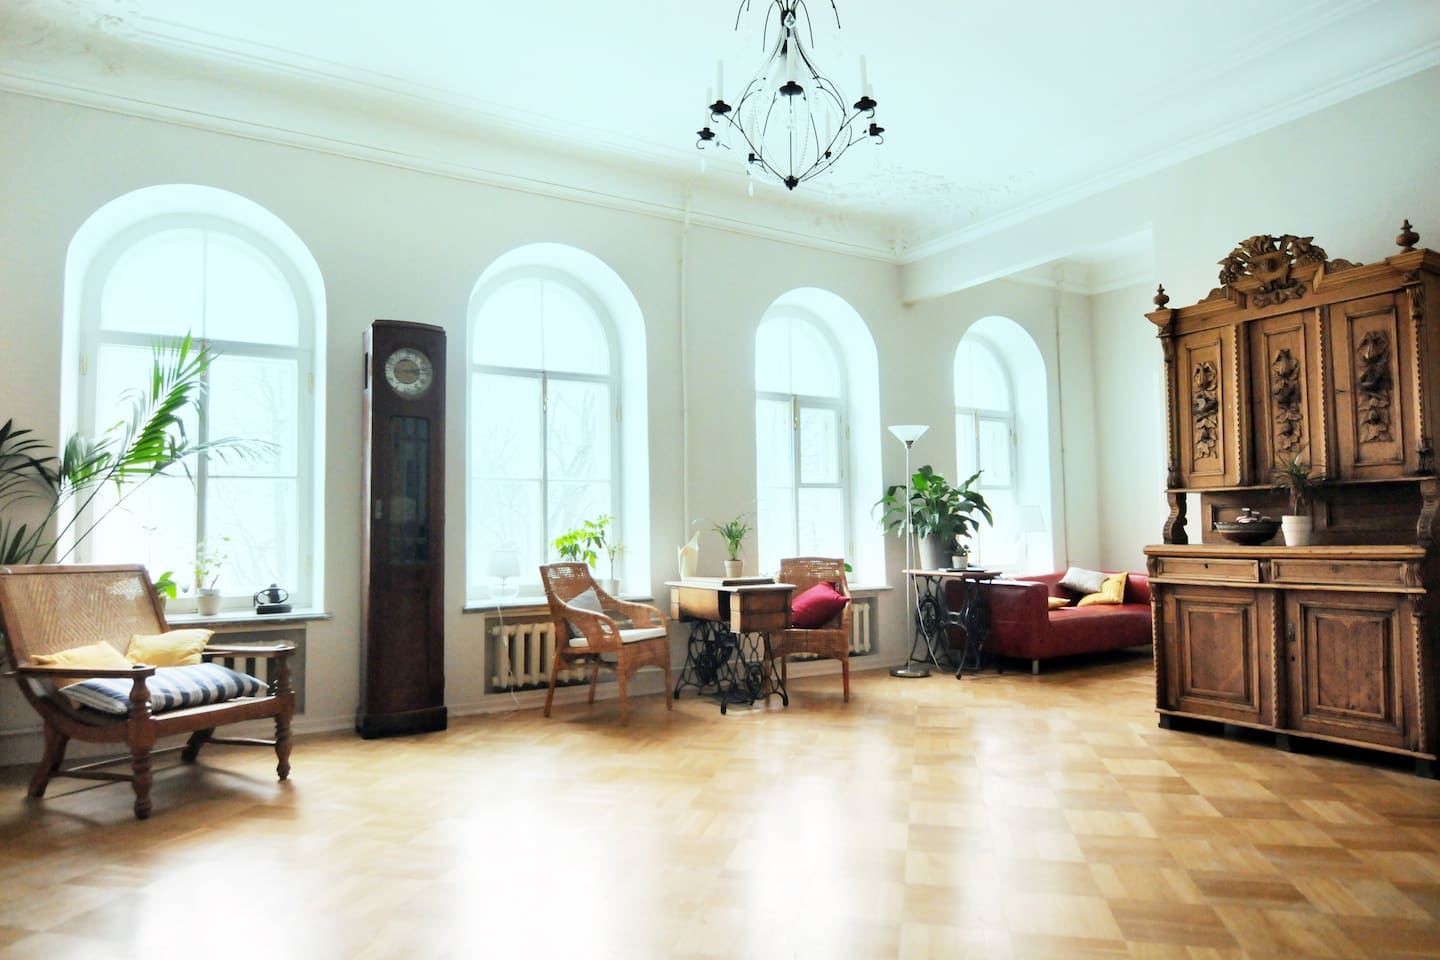 The drawing room and library are for the exclusive use of the Balcony Rooms; the windows overlook the garden of the Academy of Arts